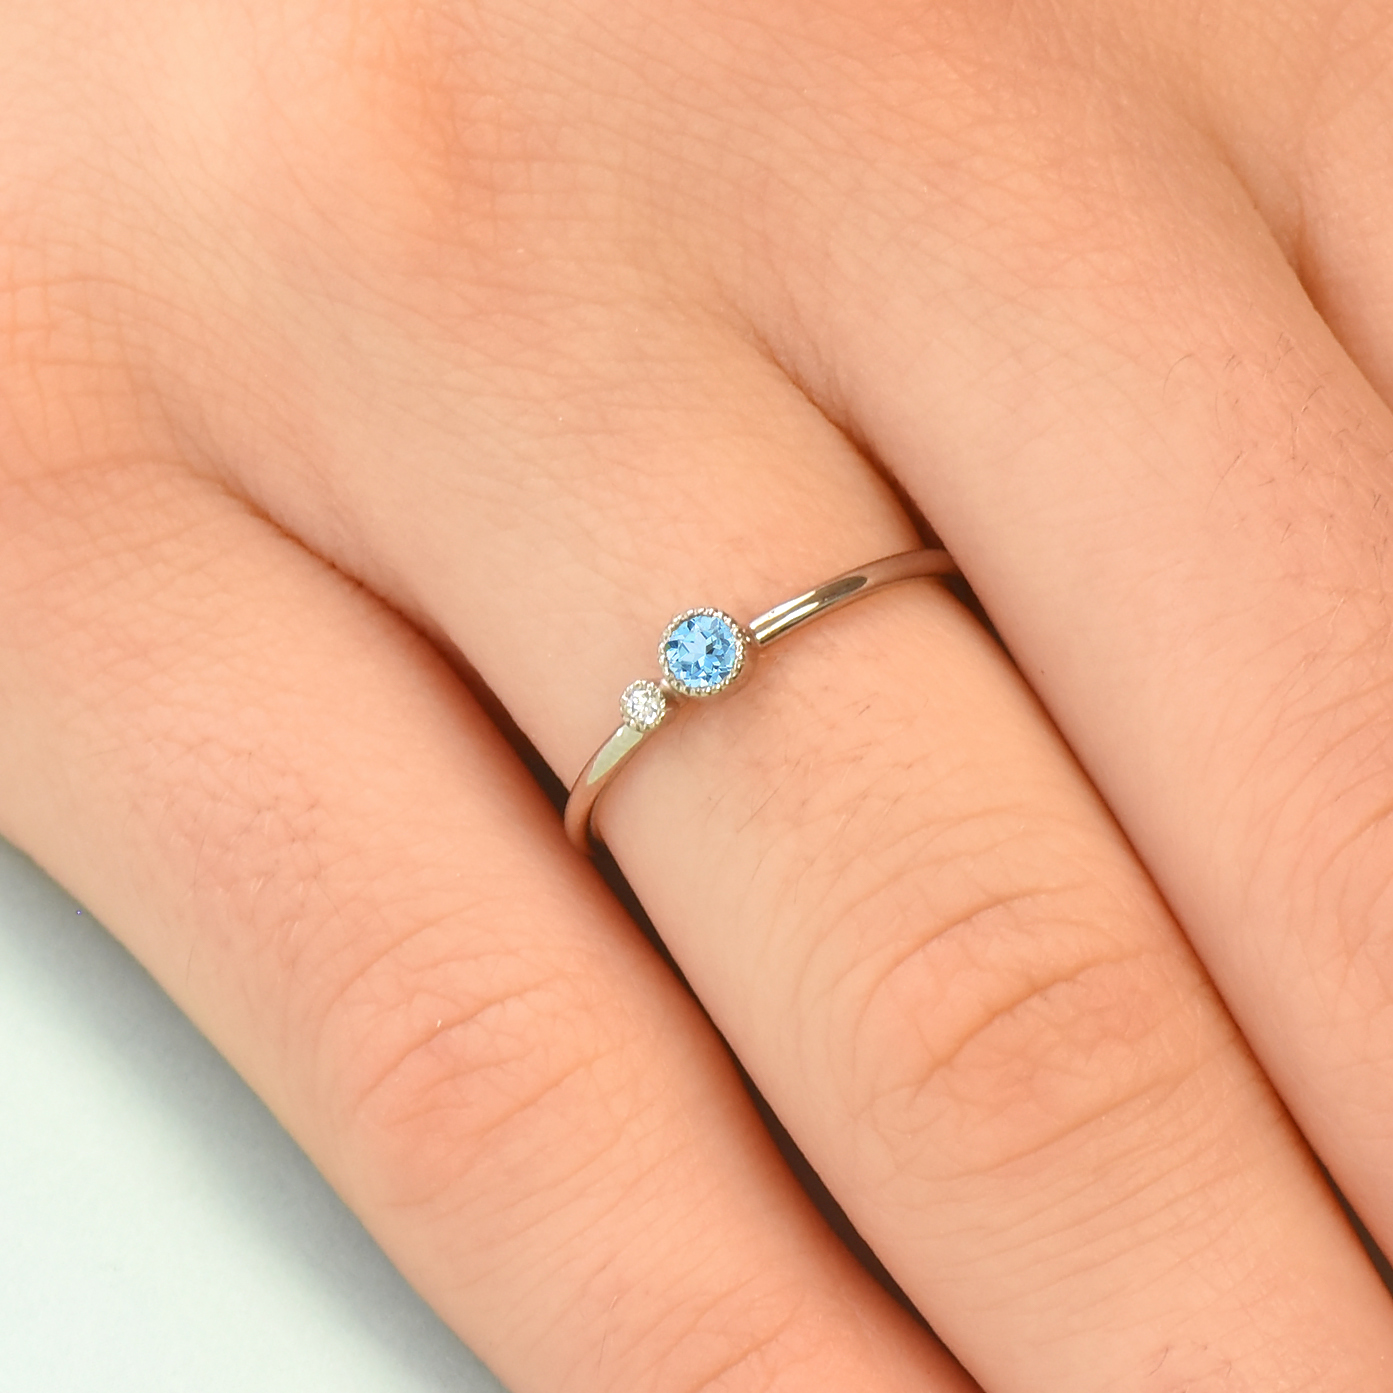 679292d6c65a1 Blue Topaz Stacking Ring with Diamond Accent | Birthstone Rings | December  Birthstone